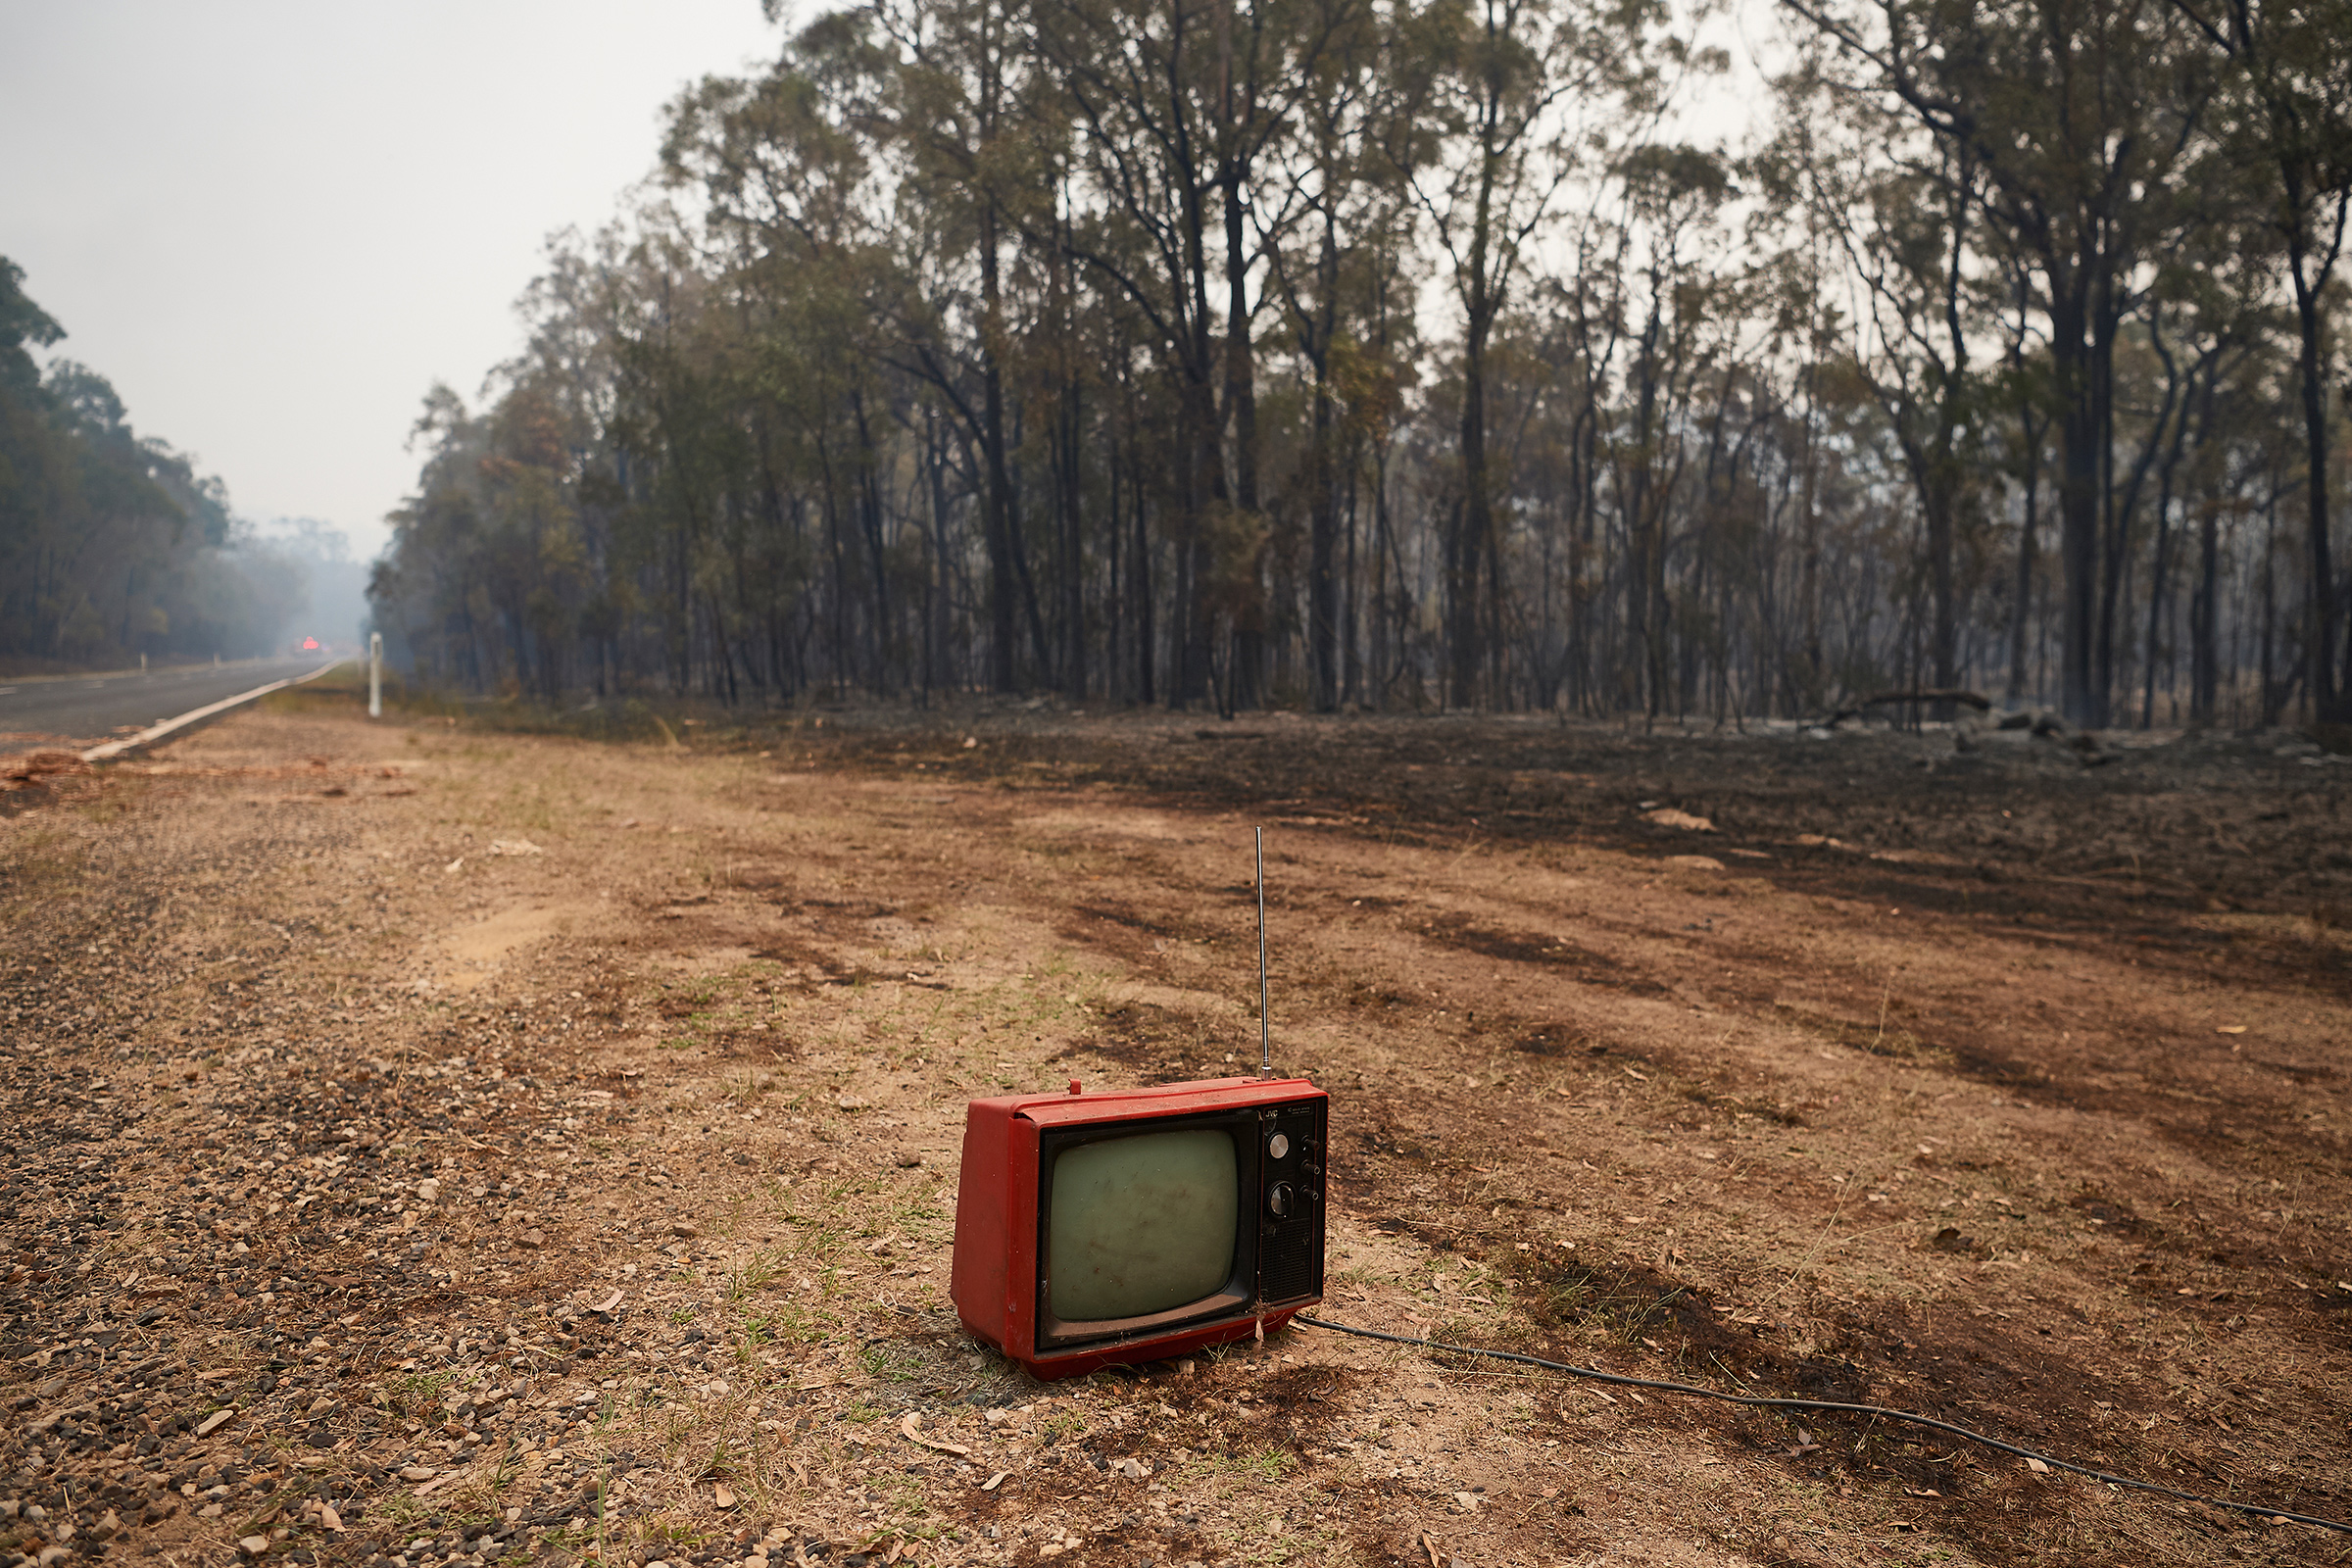 A dumped vintage TV remains intact along Putty Road after devastating fires tore through areas near Colo Heights on Nov. 14, 2019.